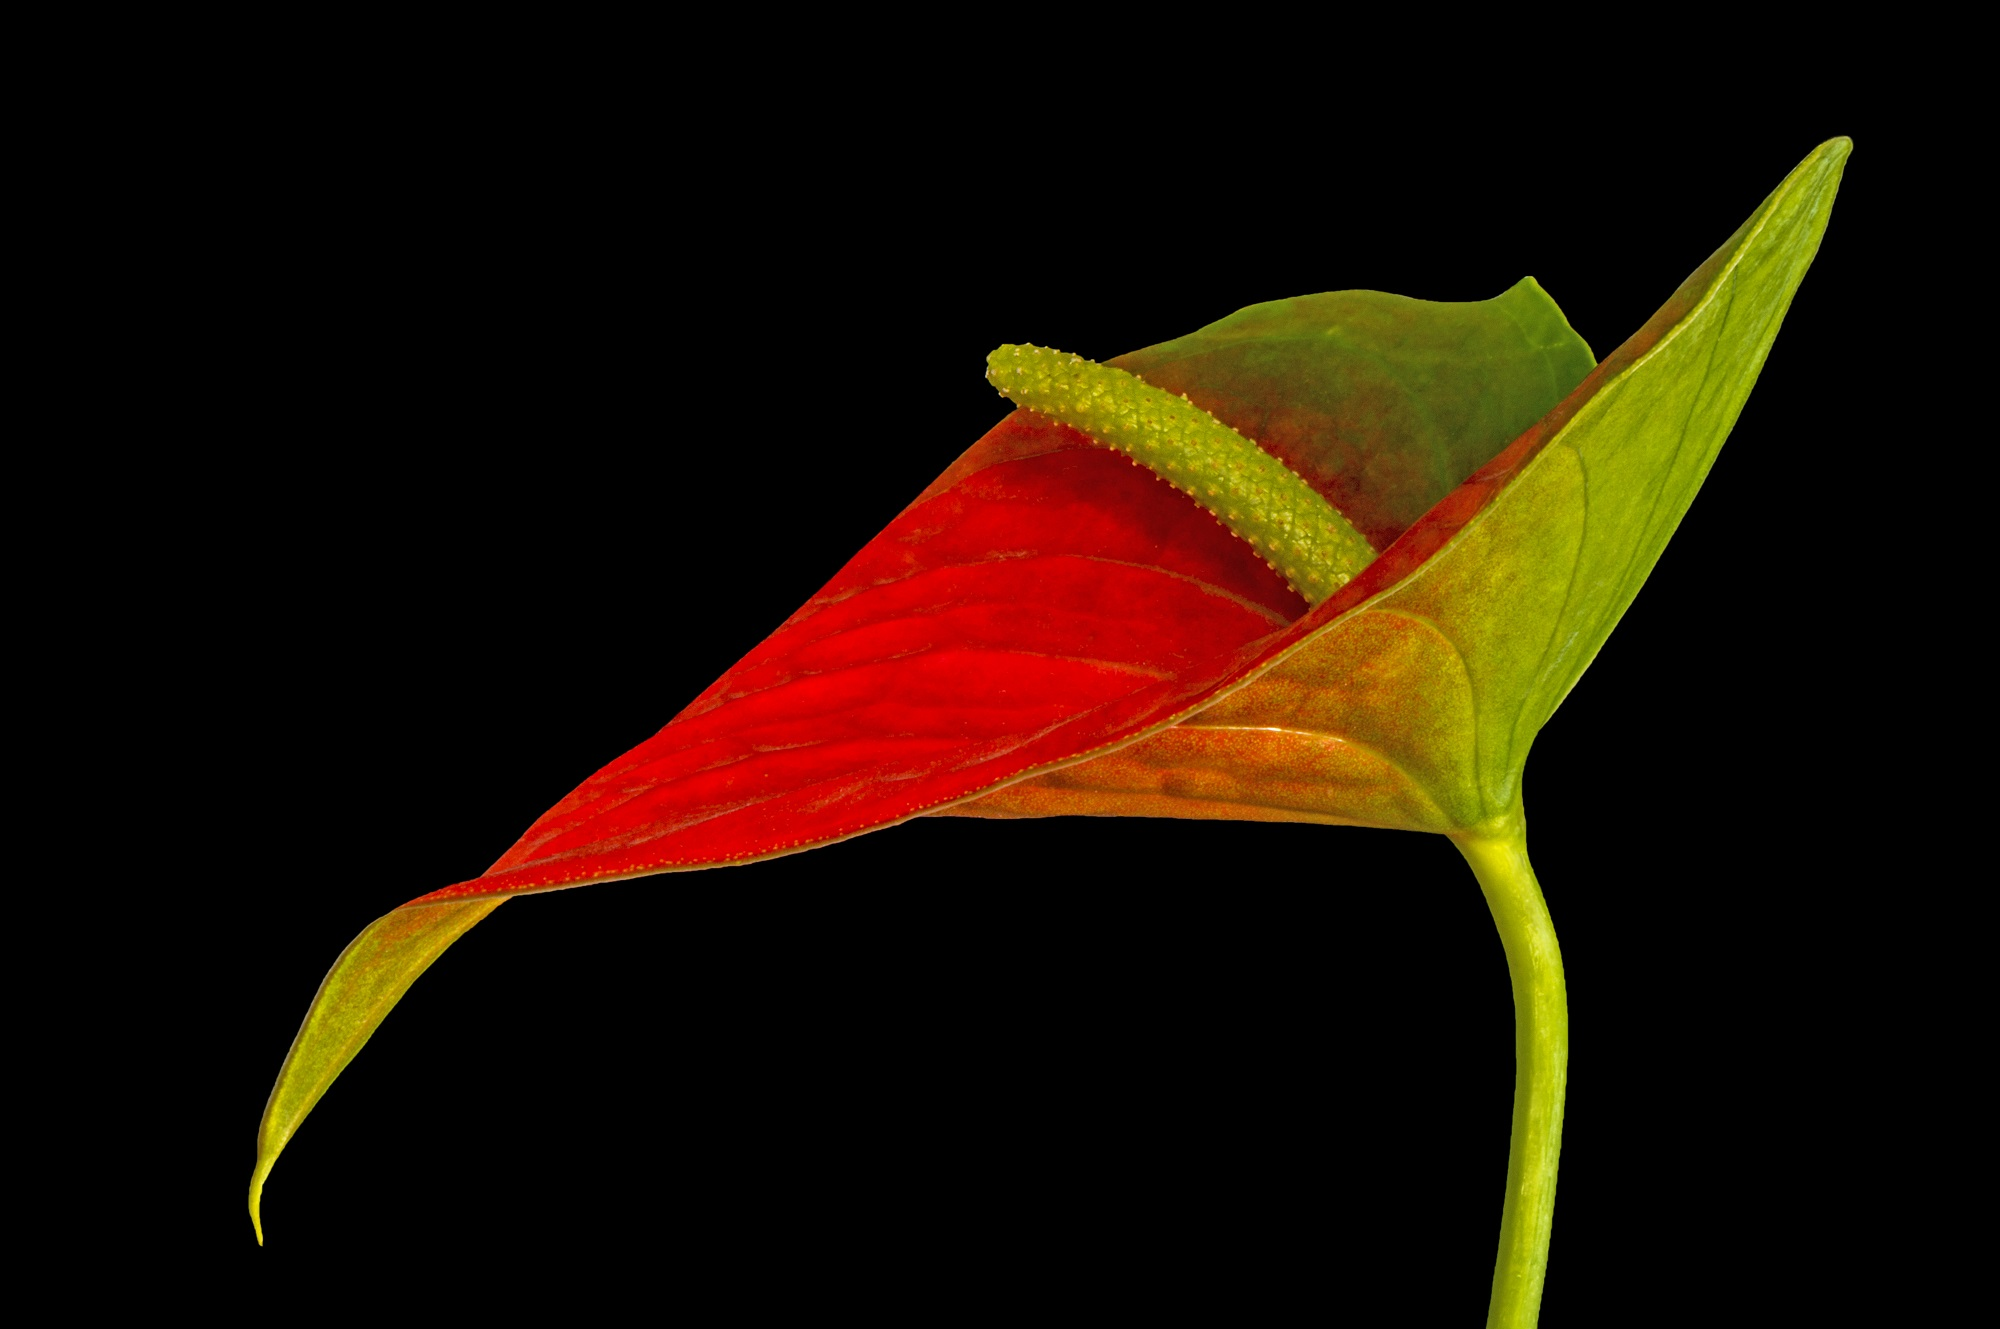 Macro photograph of a red and green Anthurium